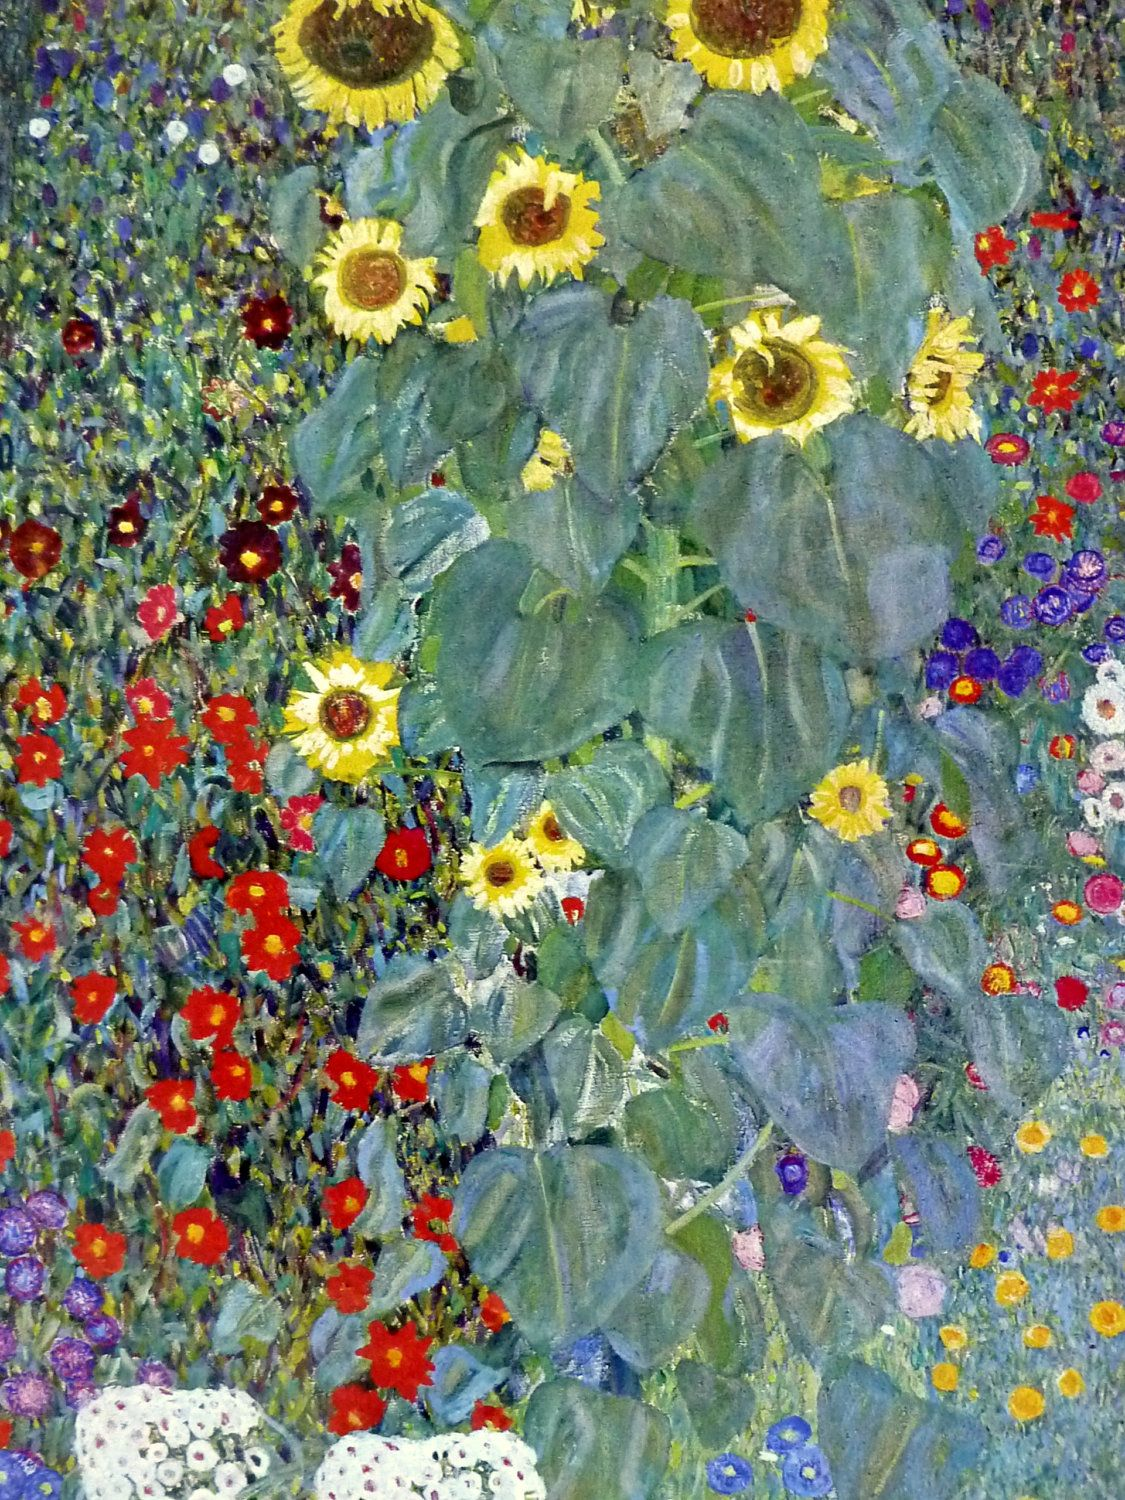 Farm Garden With Sunflowers Detail By Gustav Klimt Invogueposters Etsy